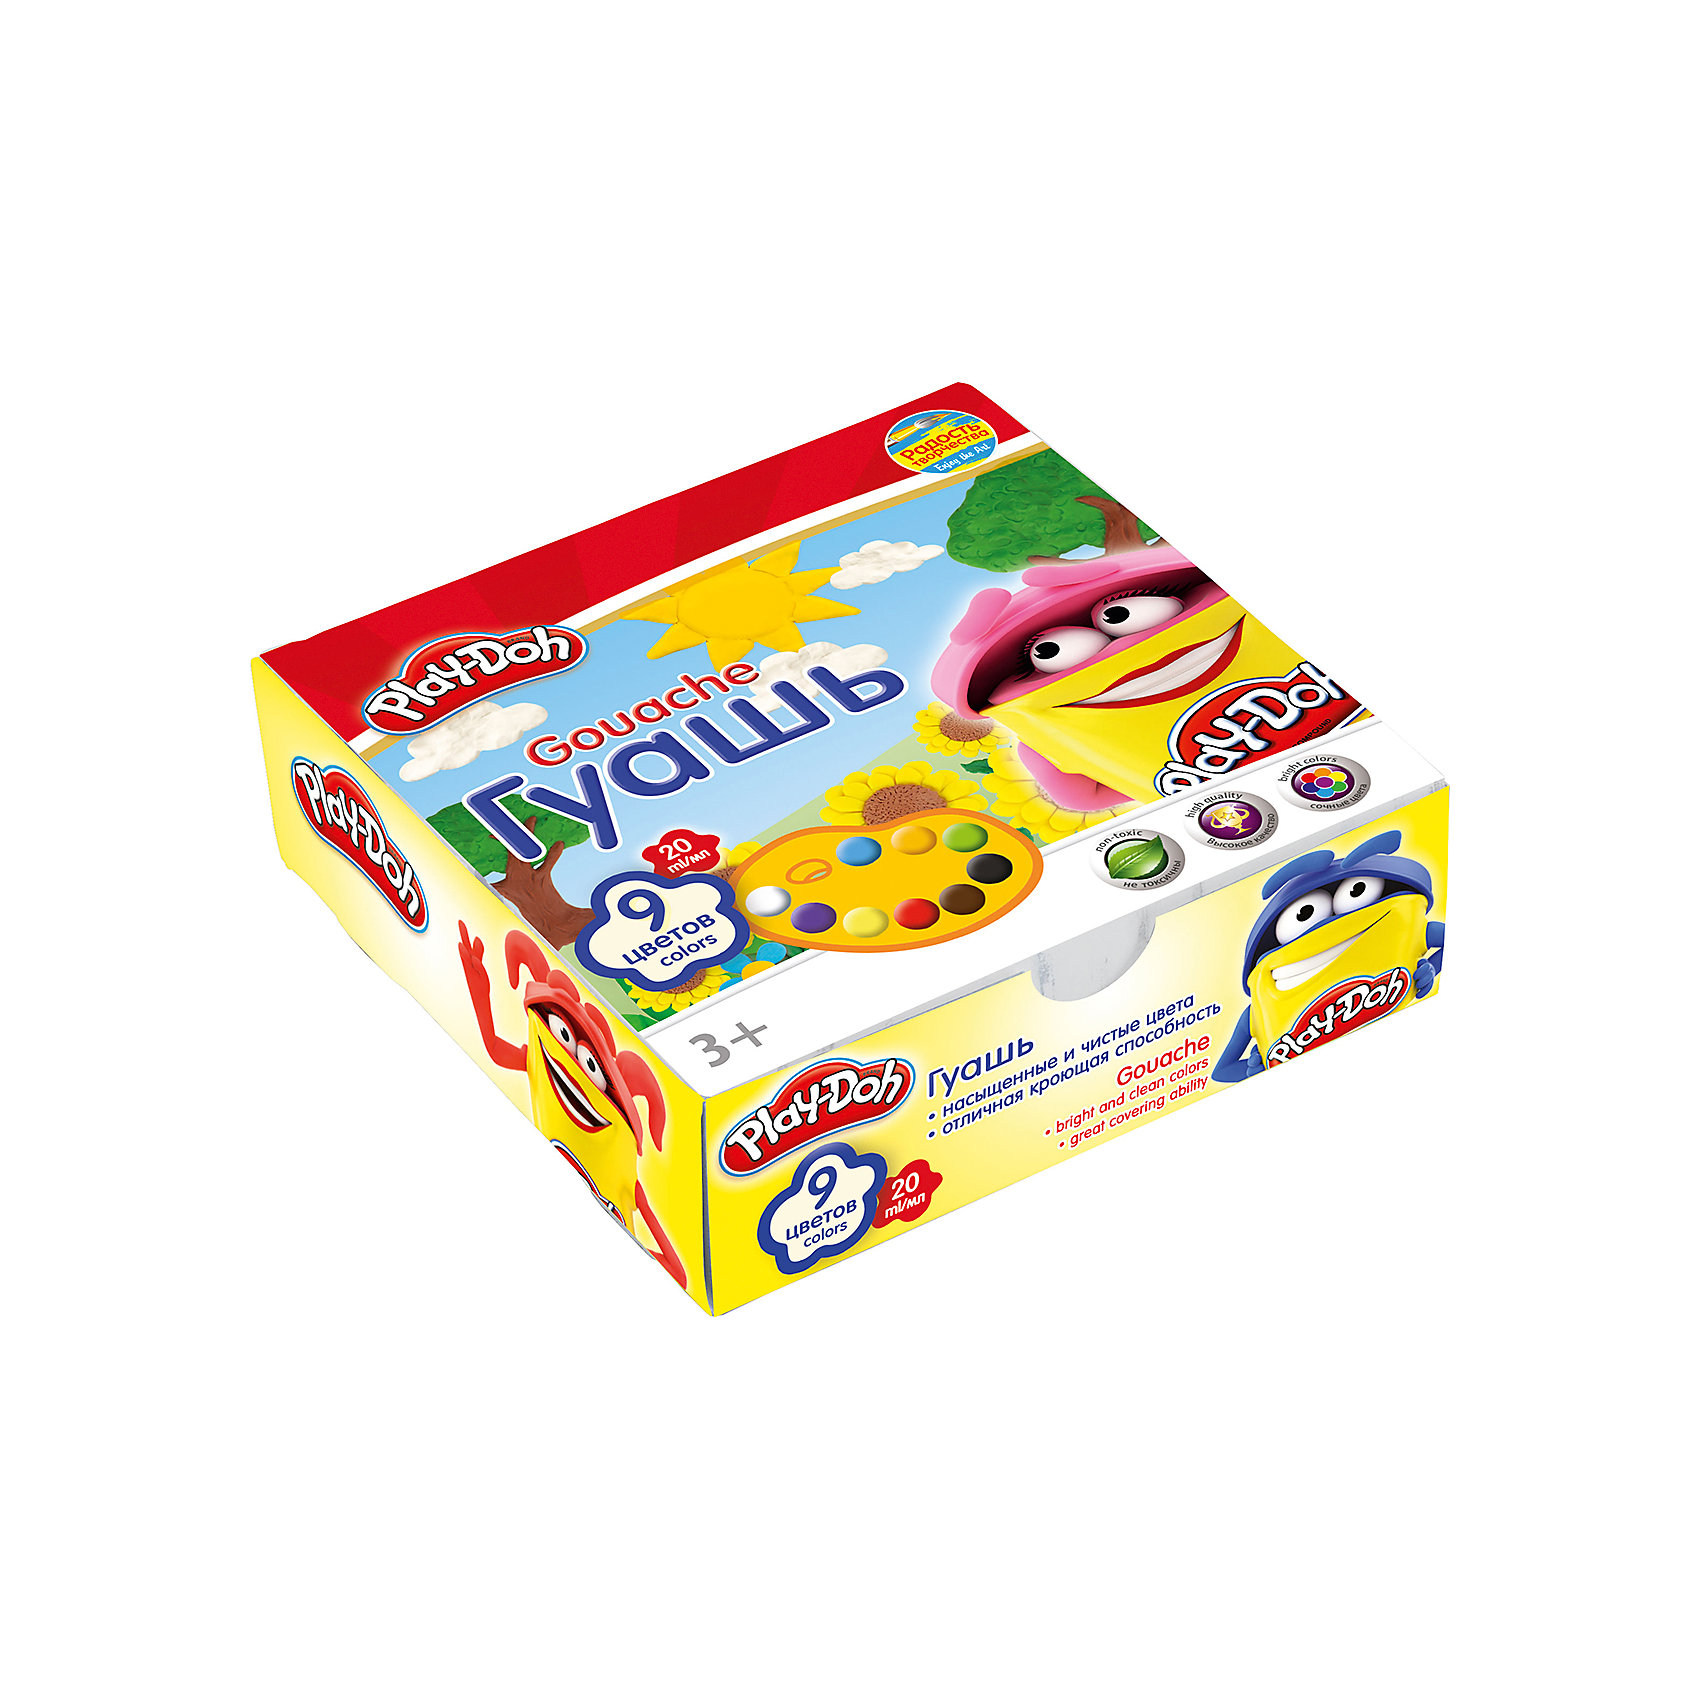 Академия групп Гуашь 9 цветов, Play-Doh hasbro игровой набор главная улица play doh город